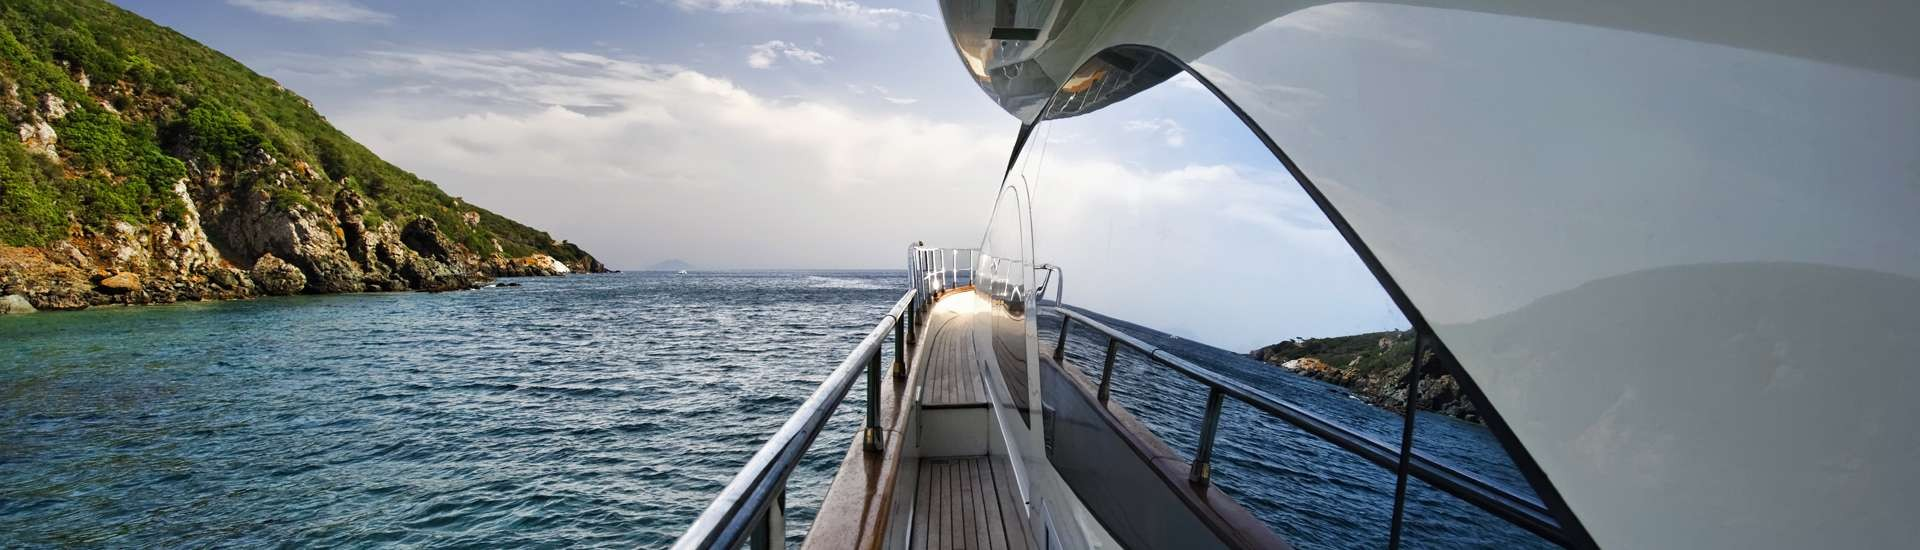 Croatia Motor Yachts rent